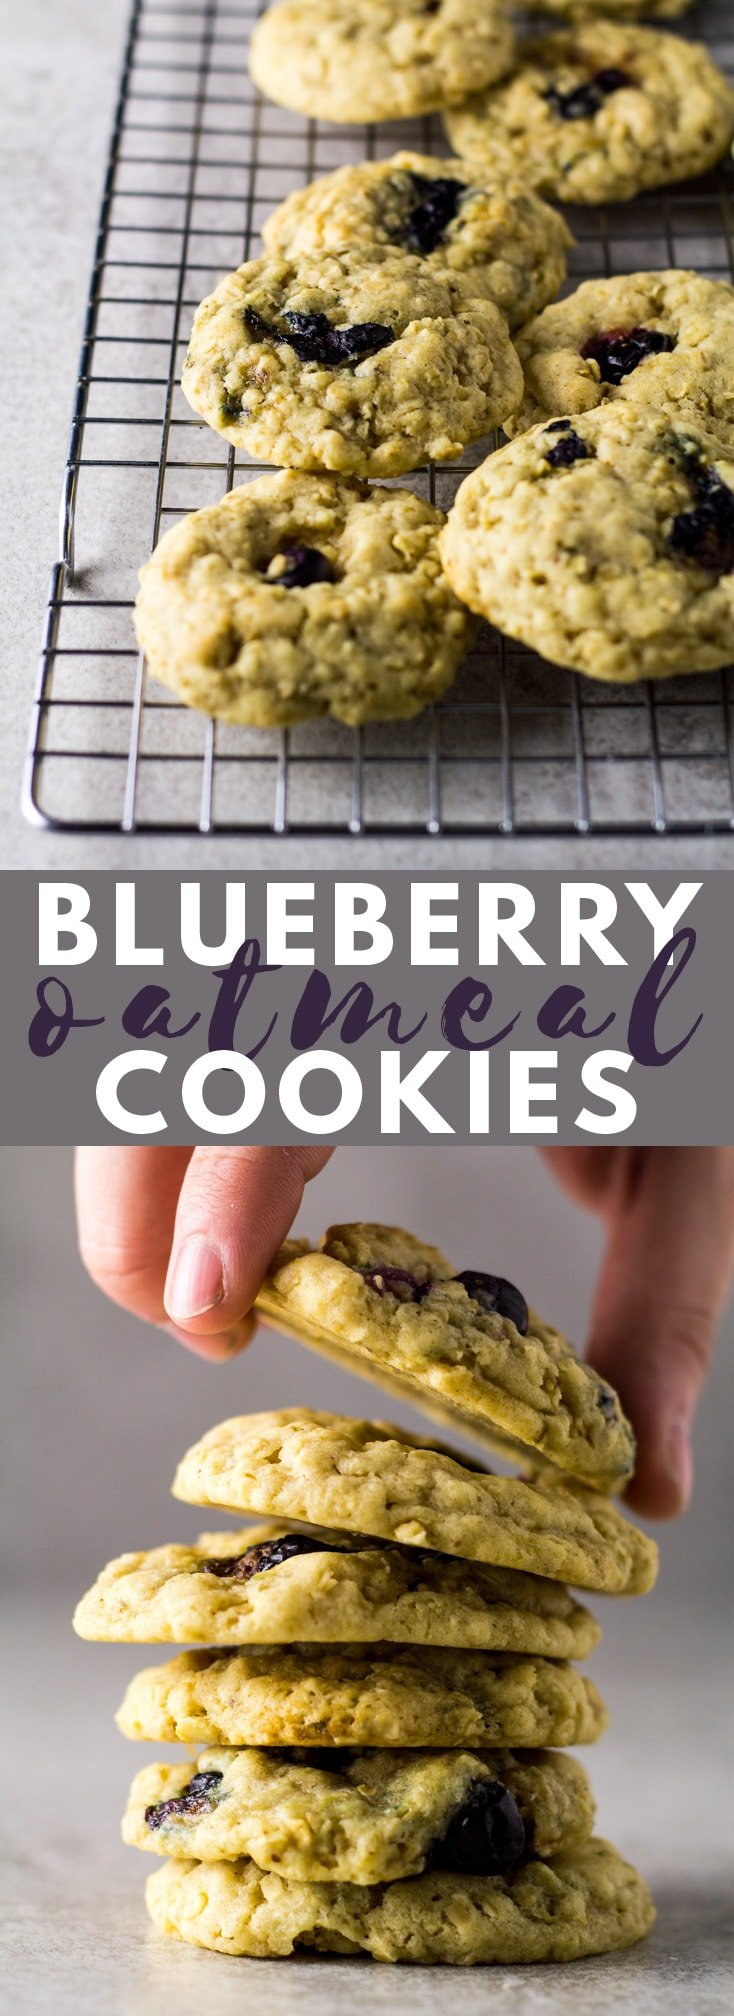 Blueberry Oatmeal Cookies - Deliciously thick, soft, and chewy oatmeal cookies that are perfectly spiced and stuffed full of fresh blueberries!